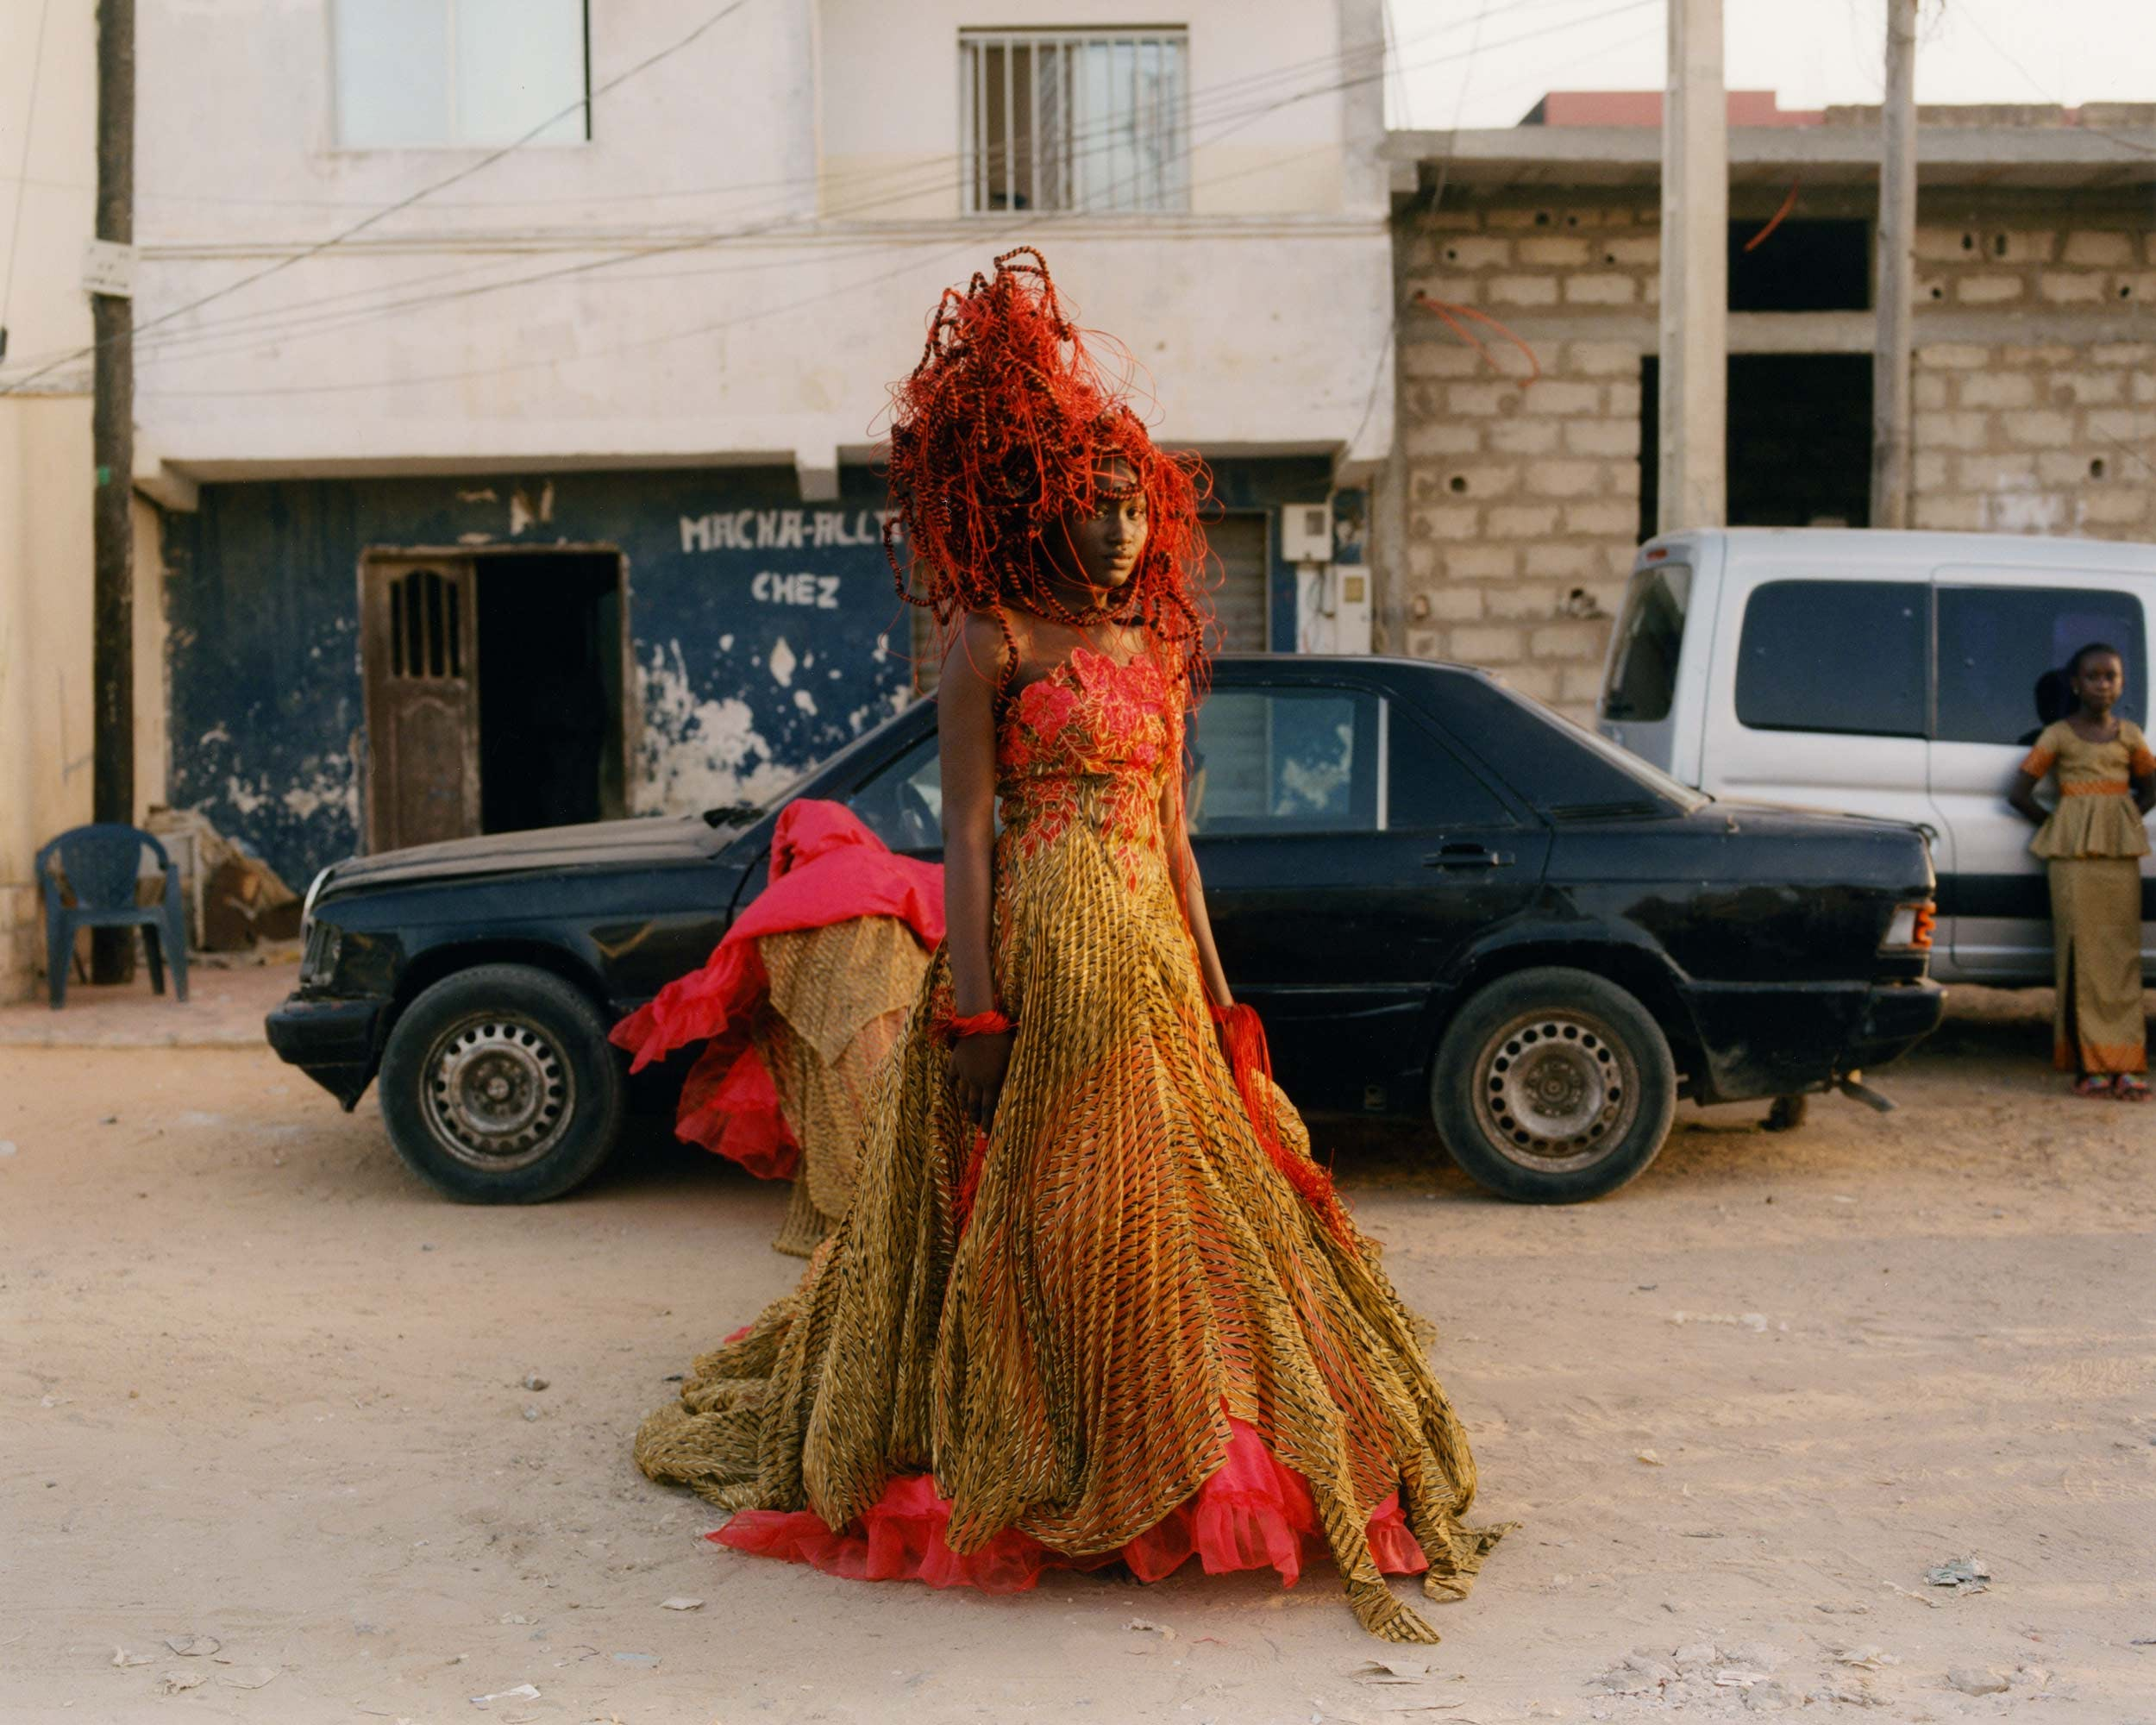 OUMOU SY: SENEGAL'S QUEEN OF COUTURE BY TOBY COULSON